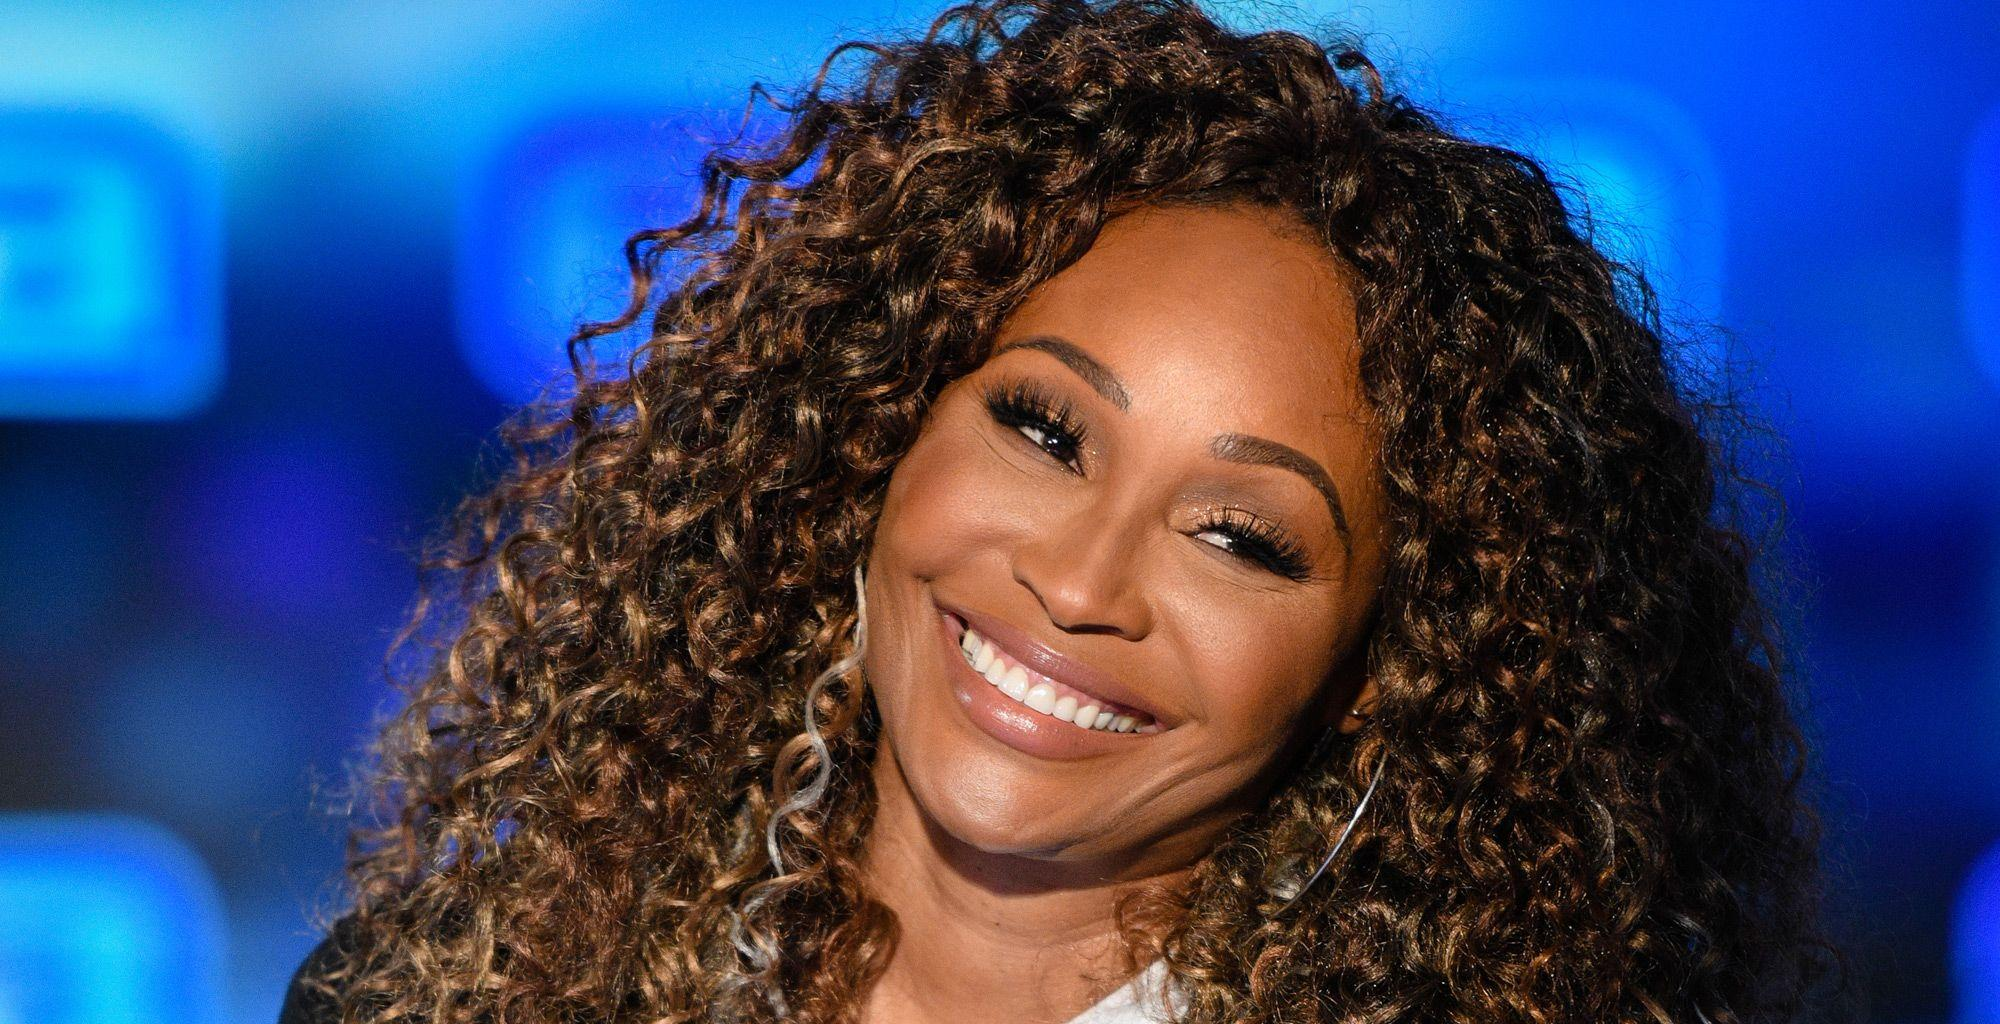 Cynthia Bailey Impresses Fans With A Throwback Photo - Check Out Her Brow Game!